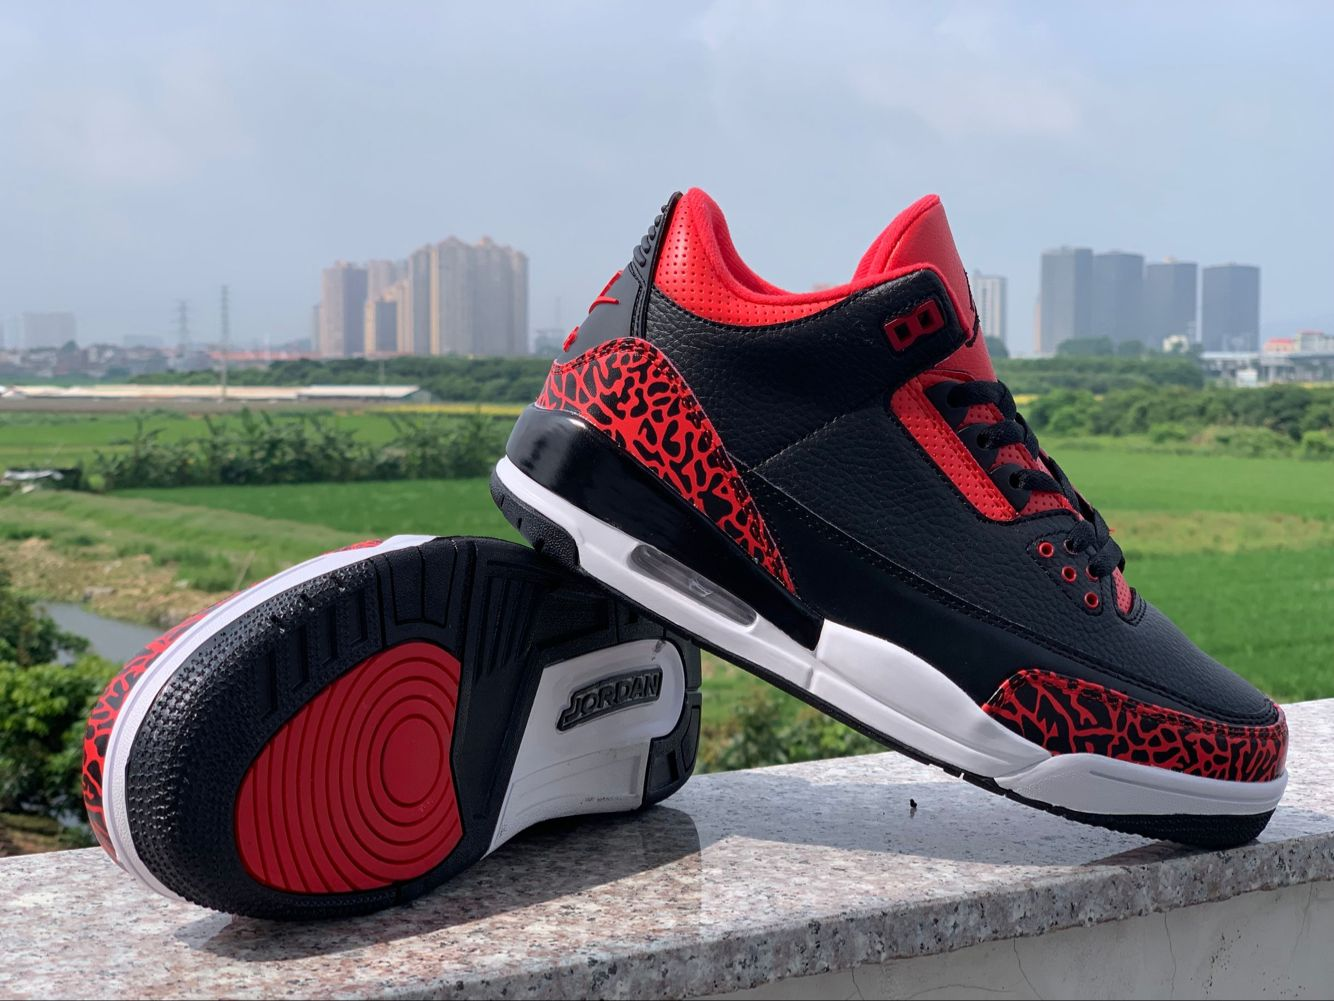 2019 Air Jordan Shoes 4 Black Red Crack Shoes